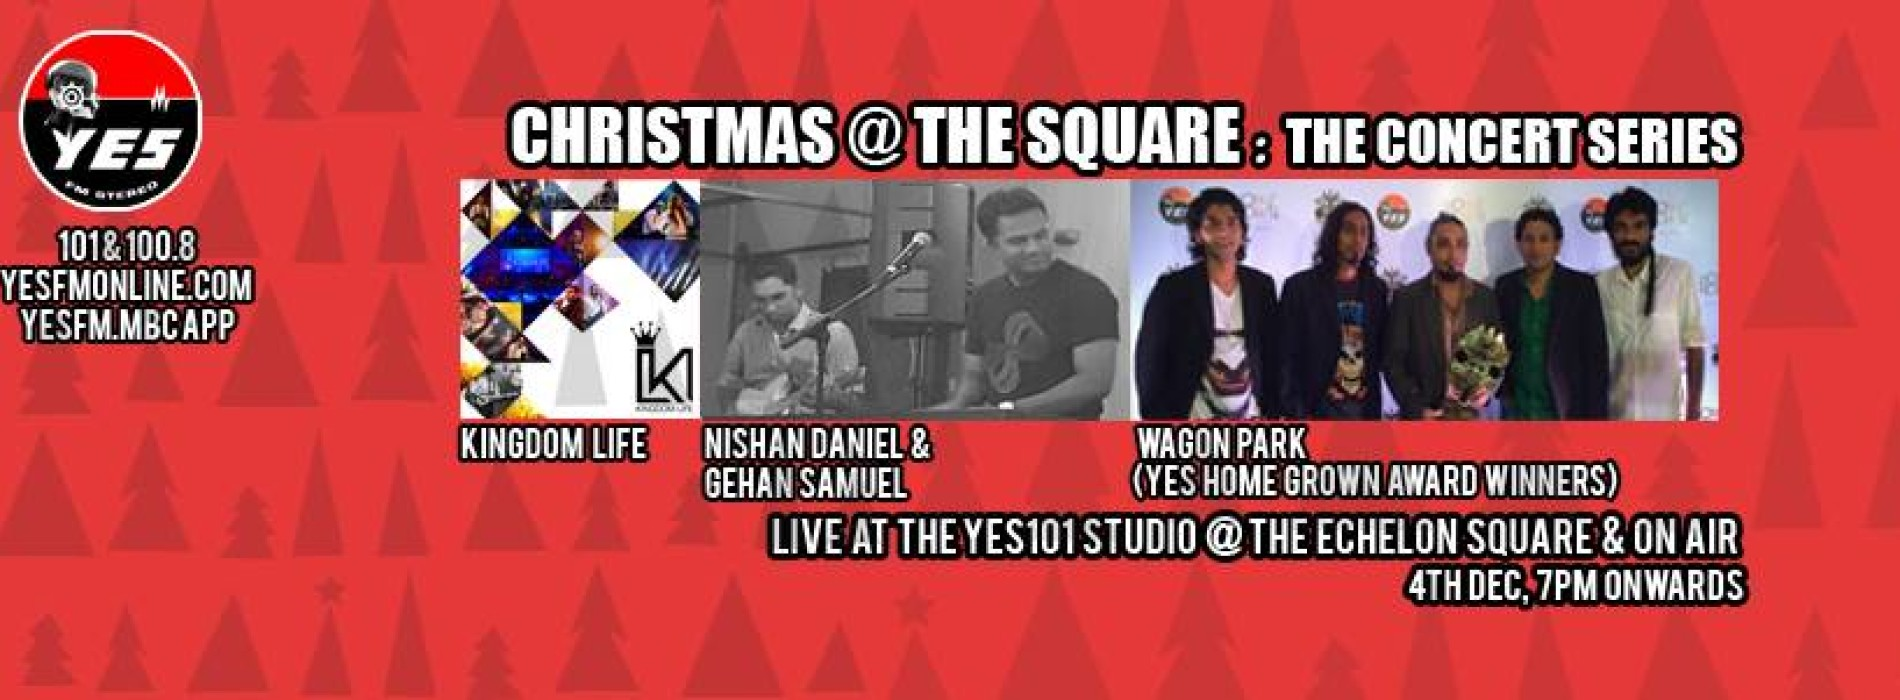 Christmas At The Square: The Concert Series (4th December)